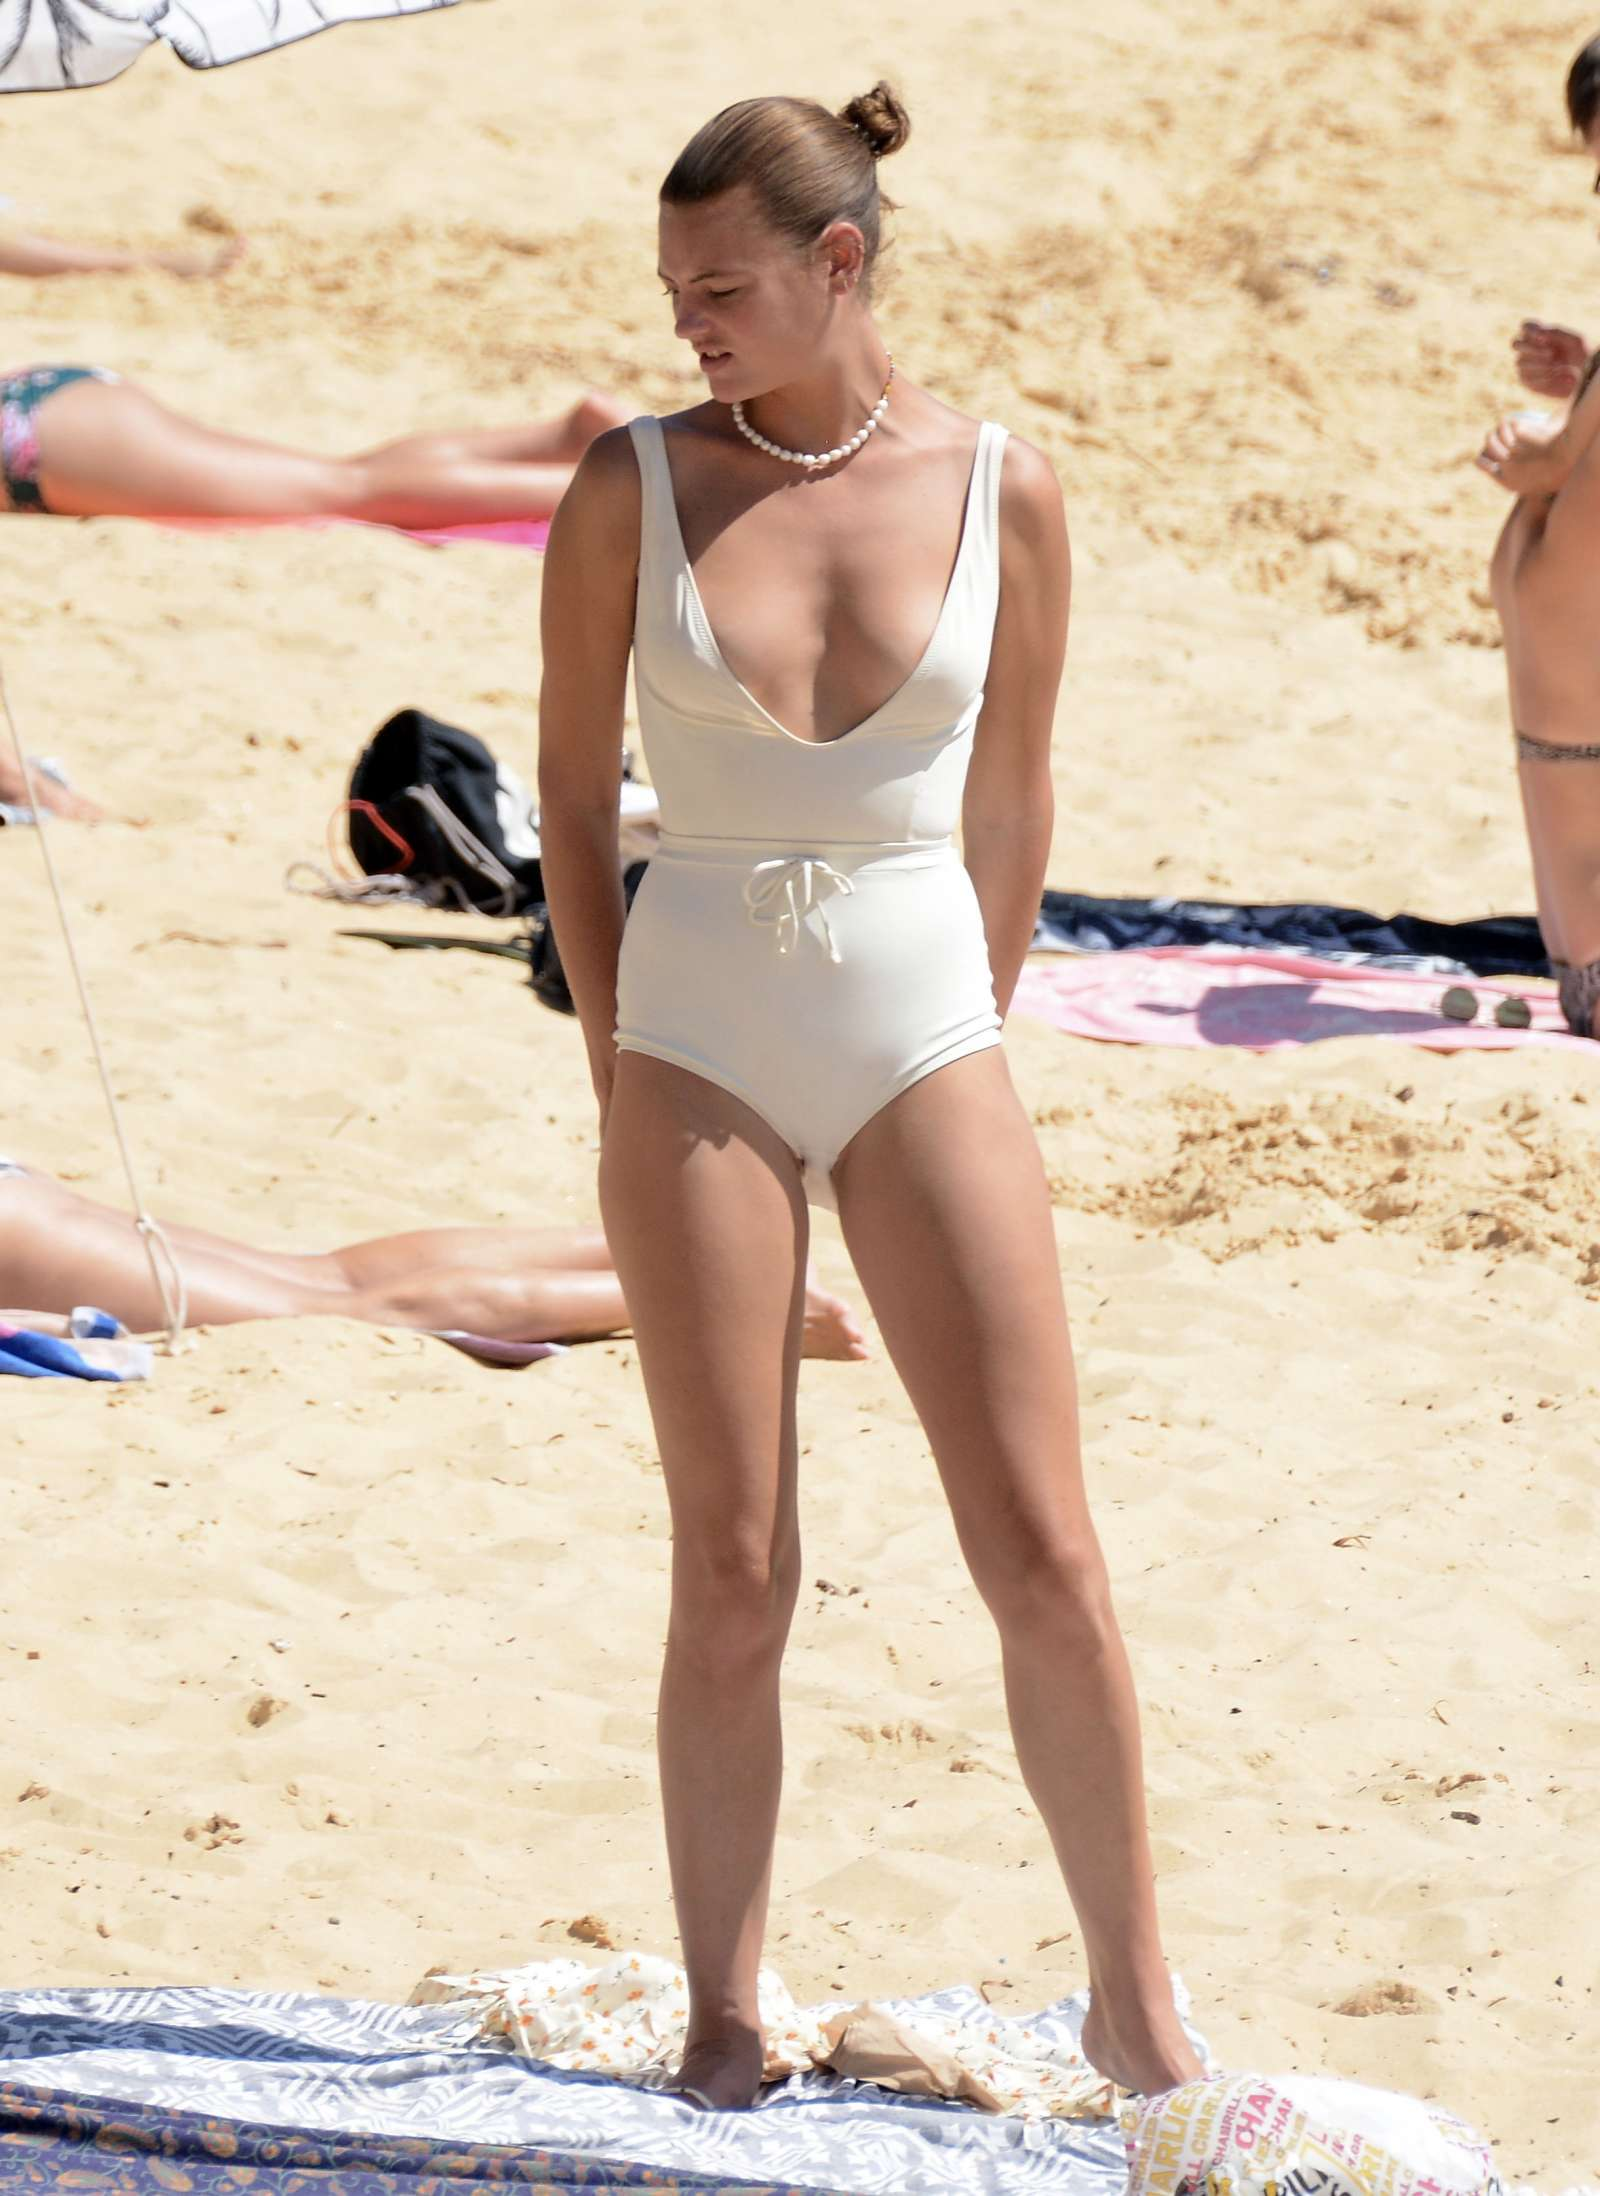 Montana Cox in Swimsuit at Camp Cove Beach